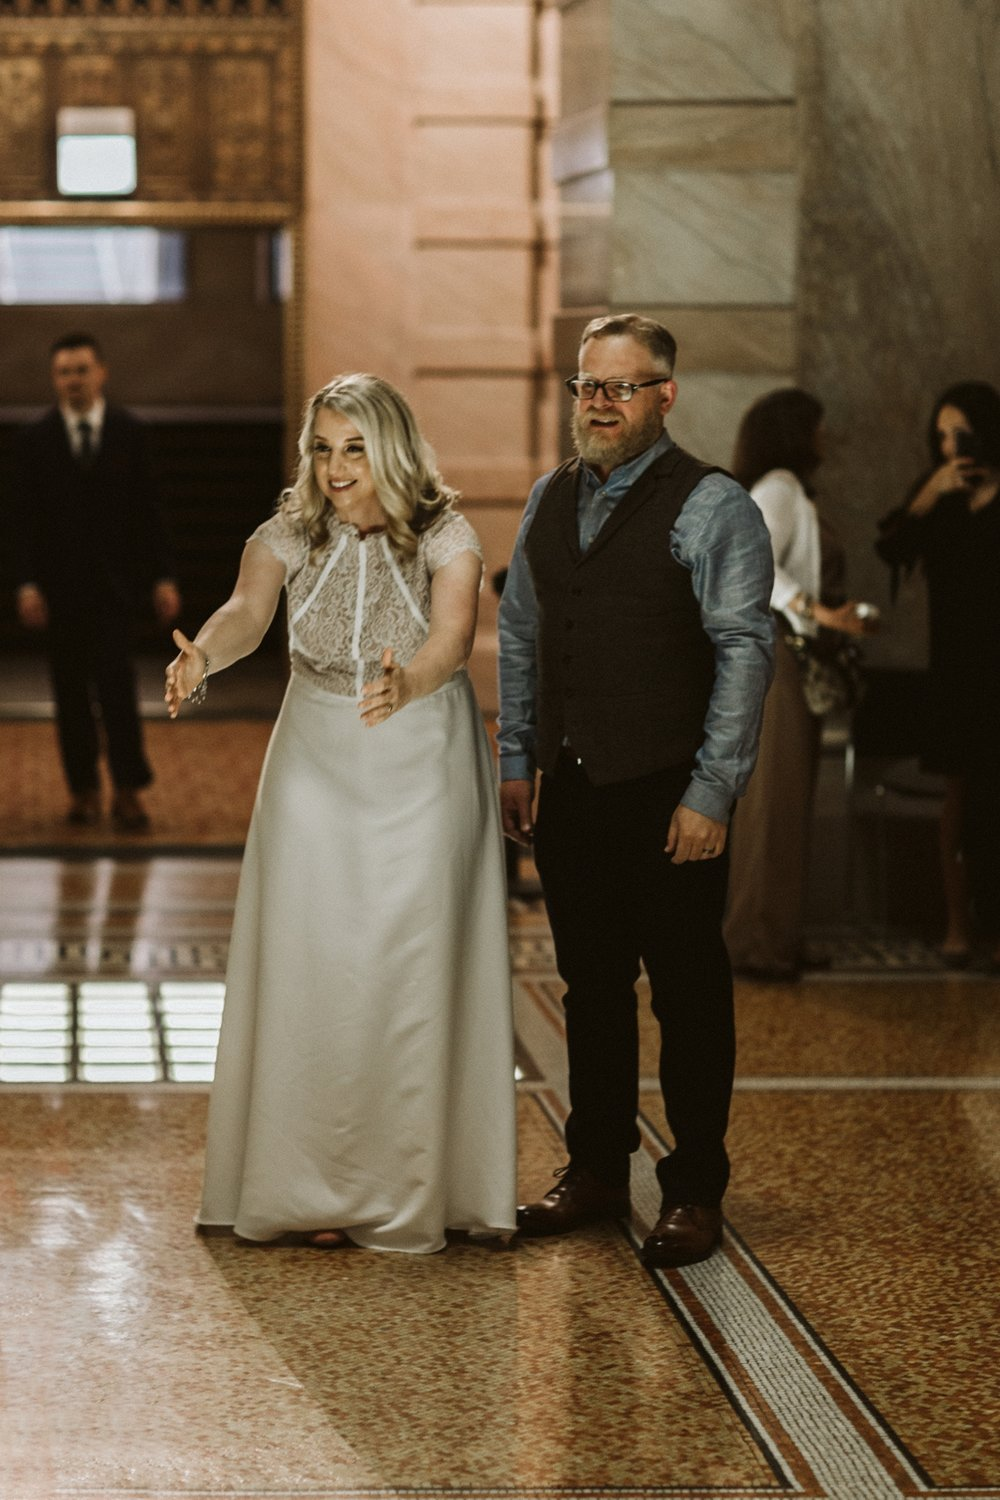 Chicago Cultural Center weddings | tiny weddings | lisa kathan photography